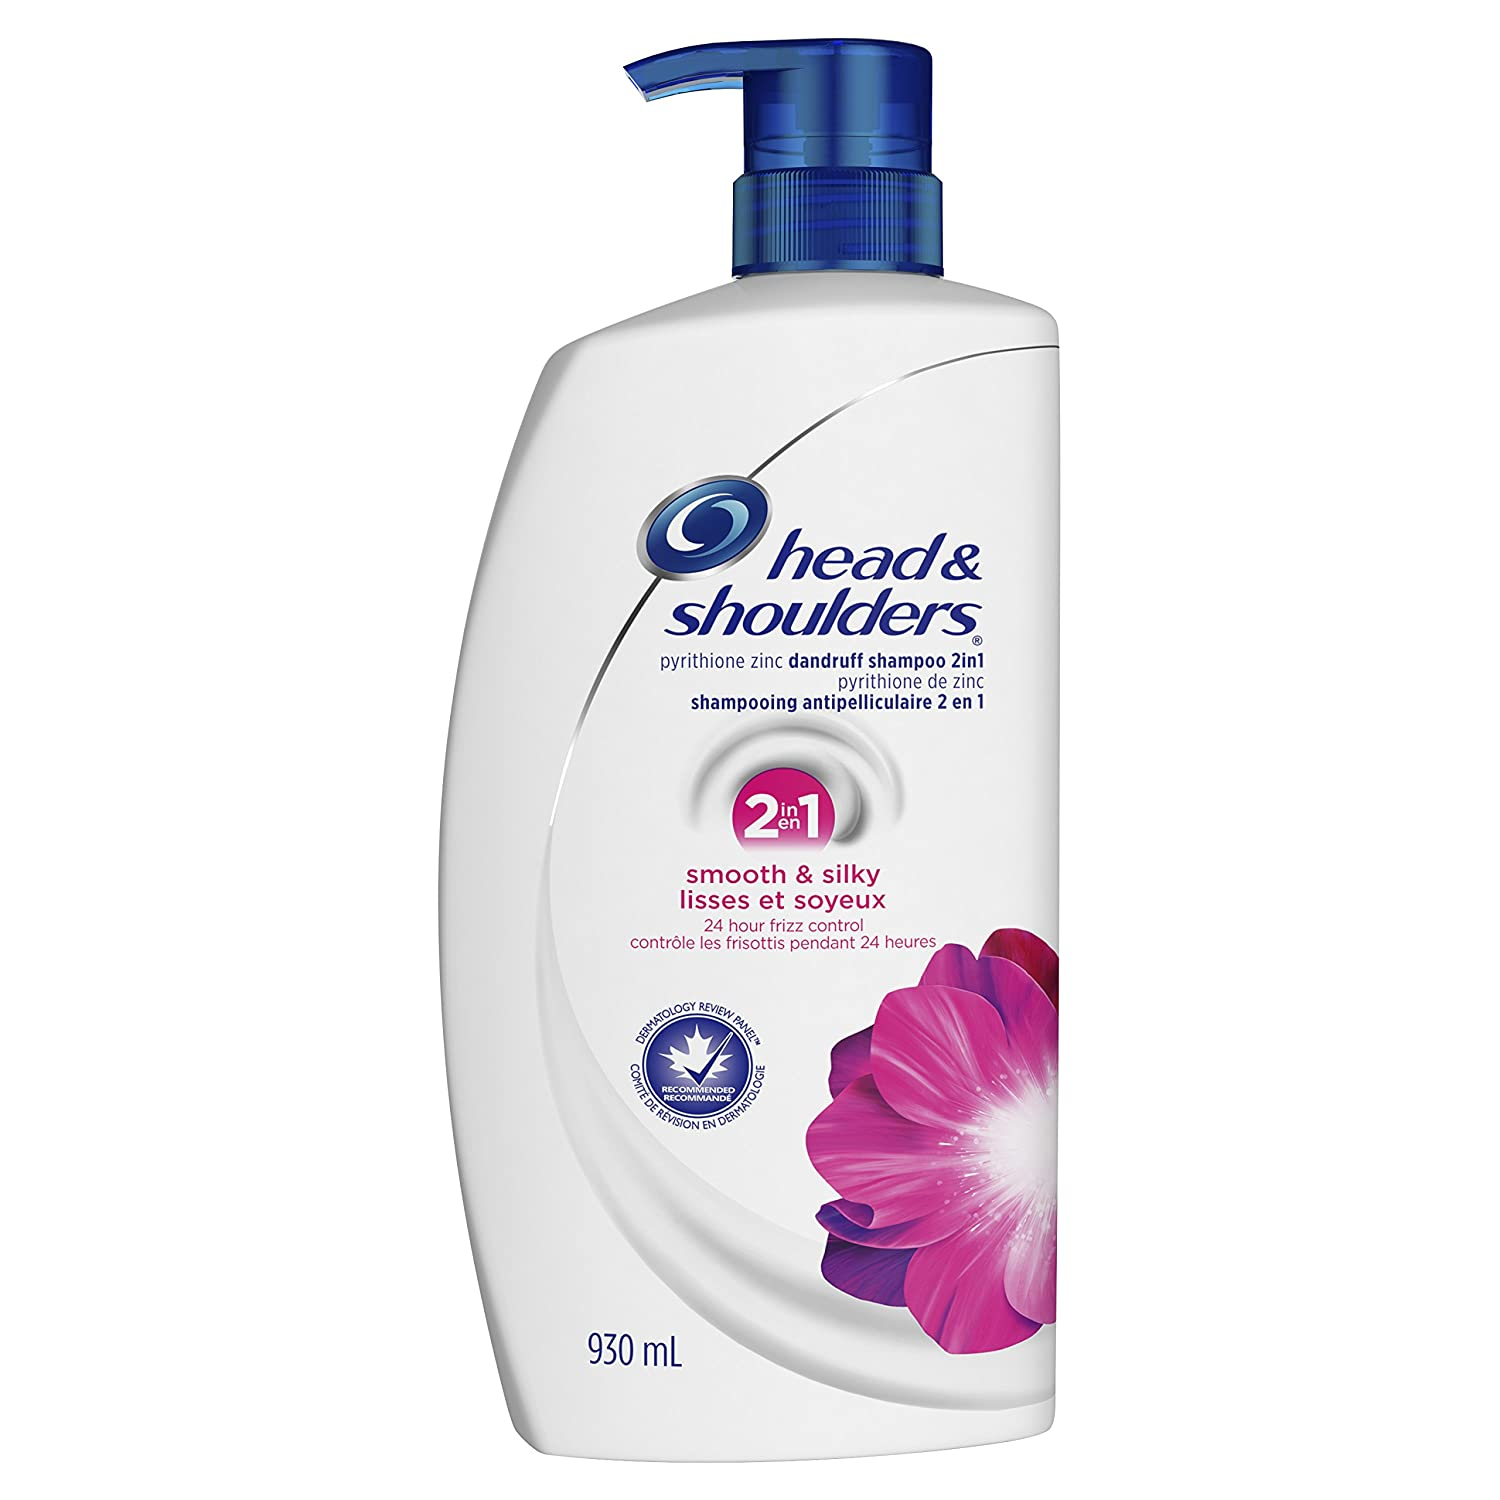 Head & Shoulders Smooth & Silky 2 in 1 Dandruff Shampoo + Conditioner, 930ml Procter and Gamble